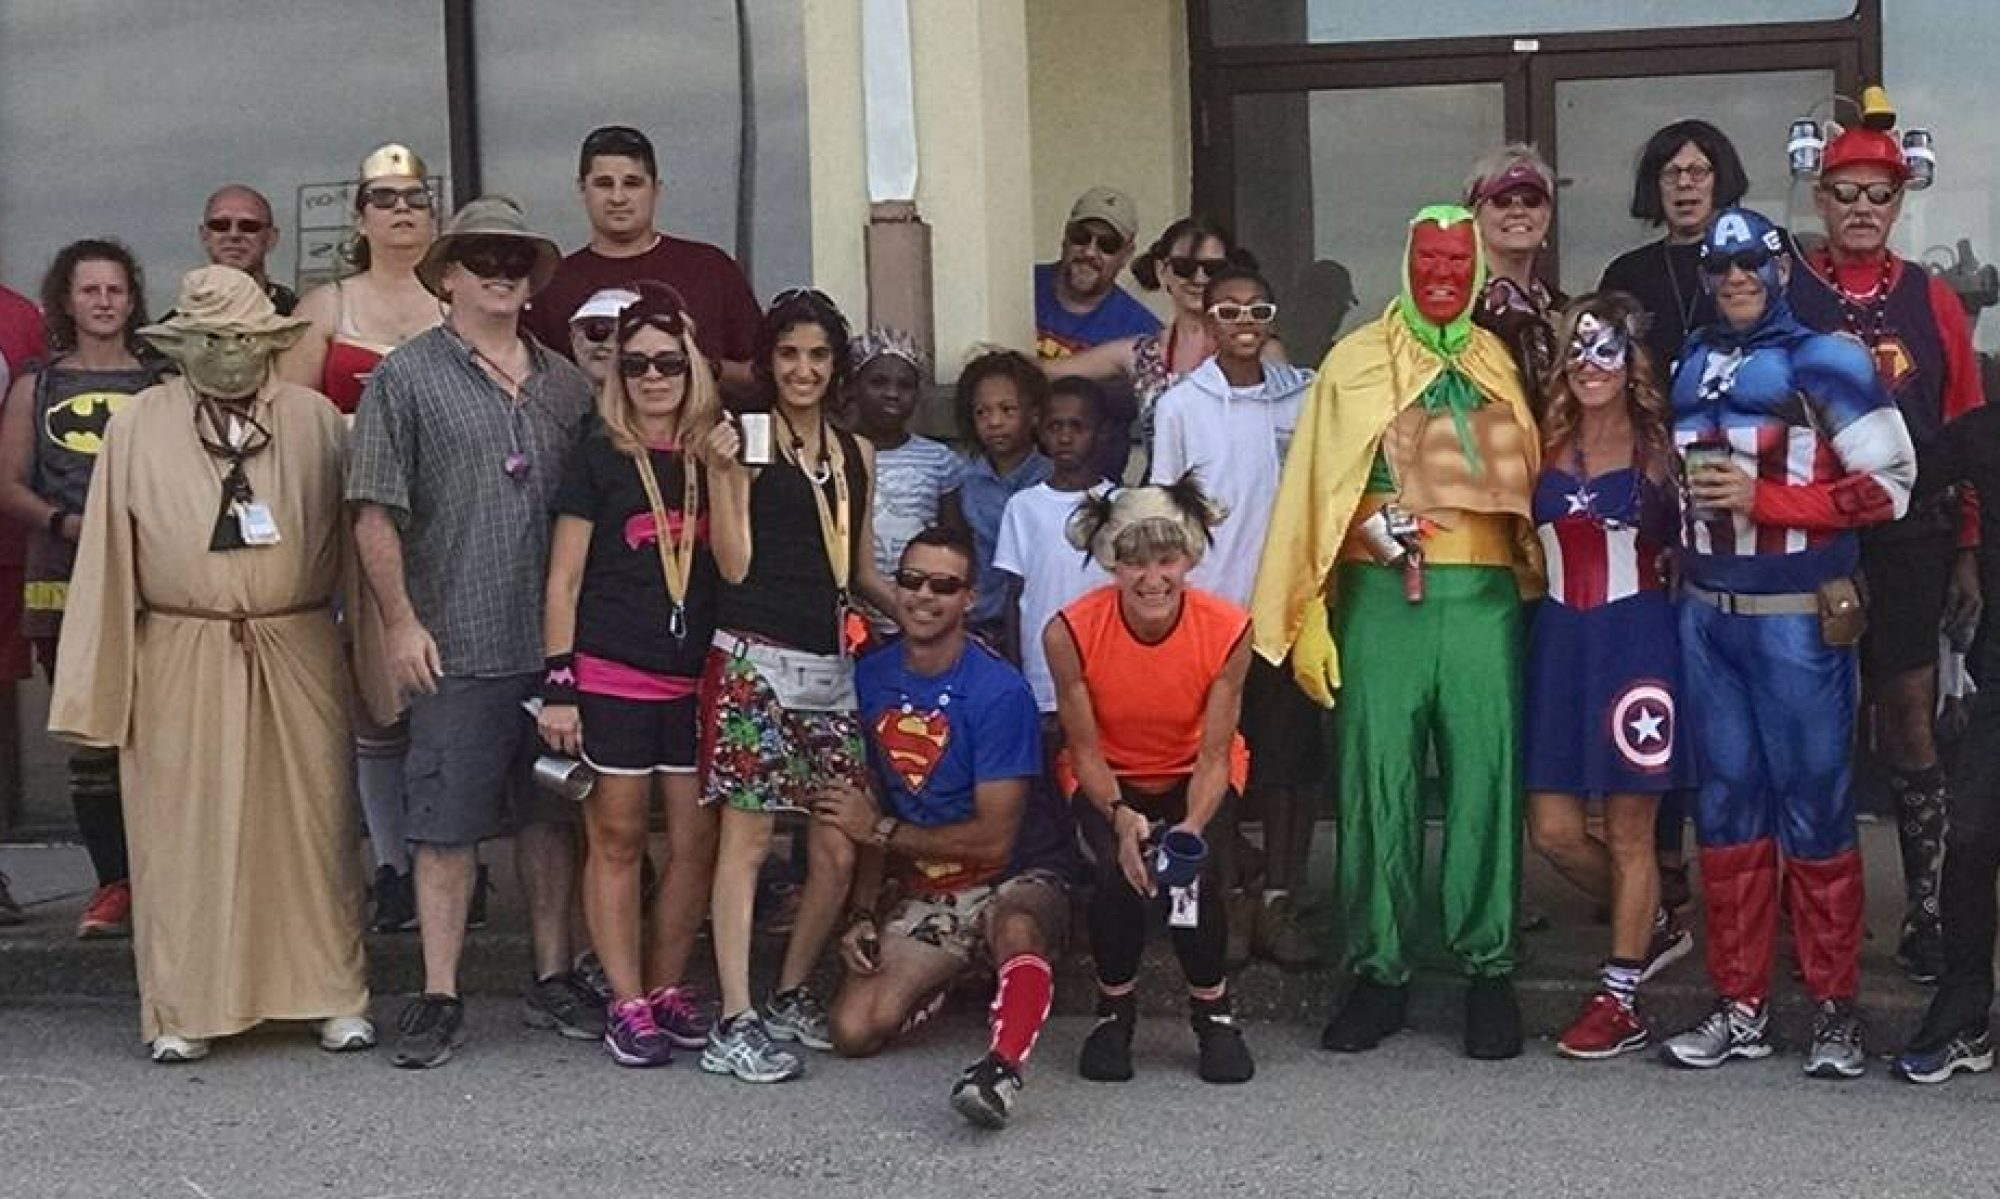 Dayton Hash House Harriers